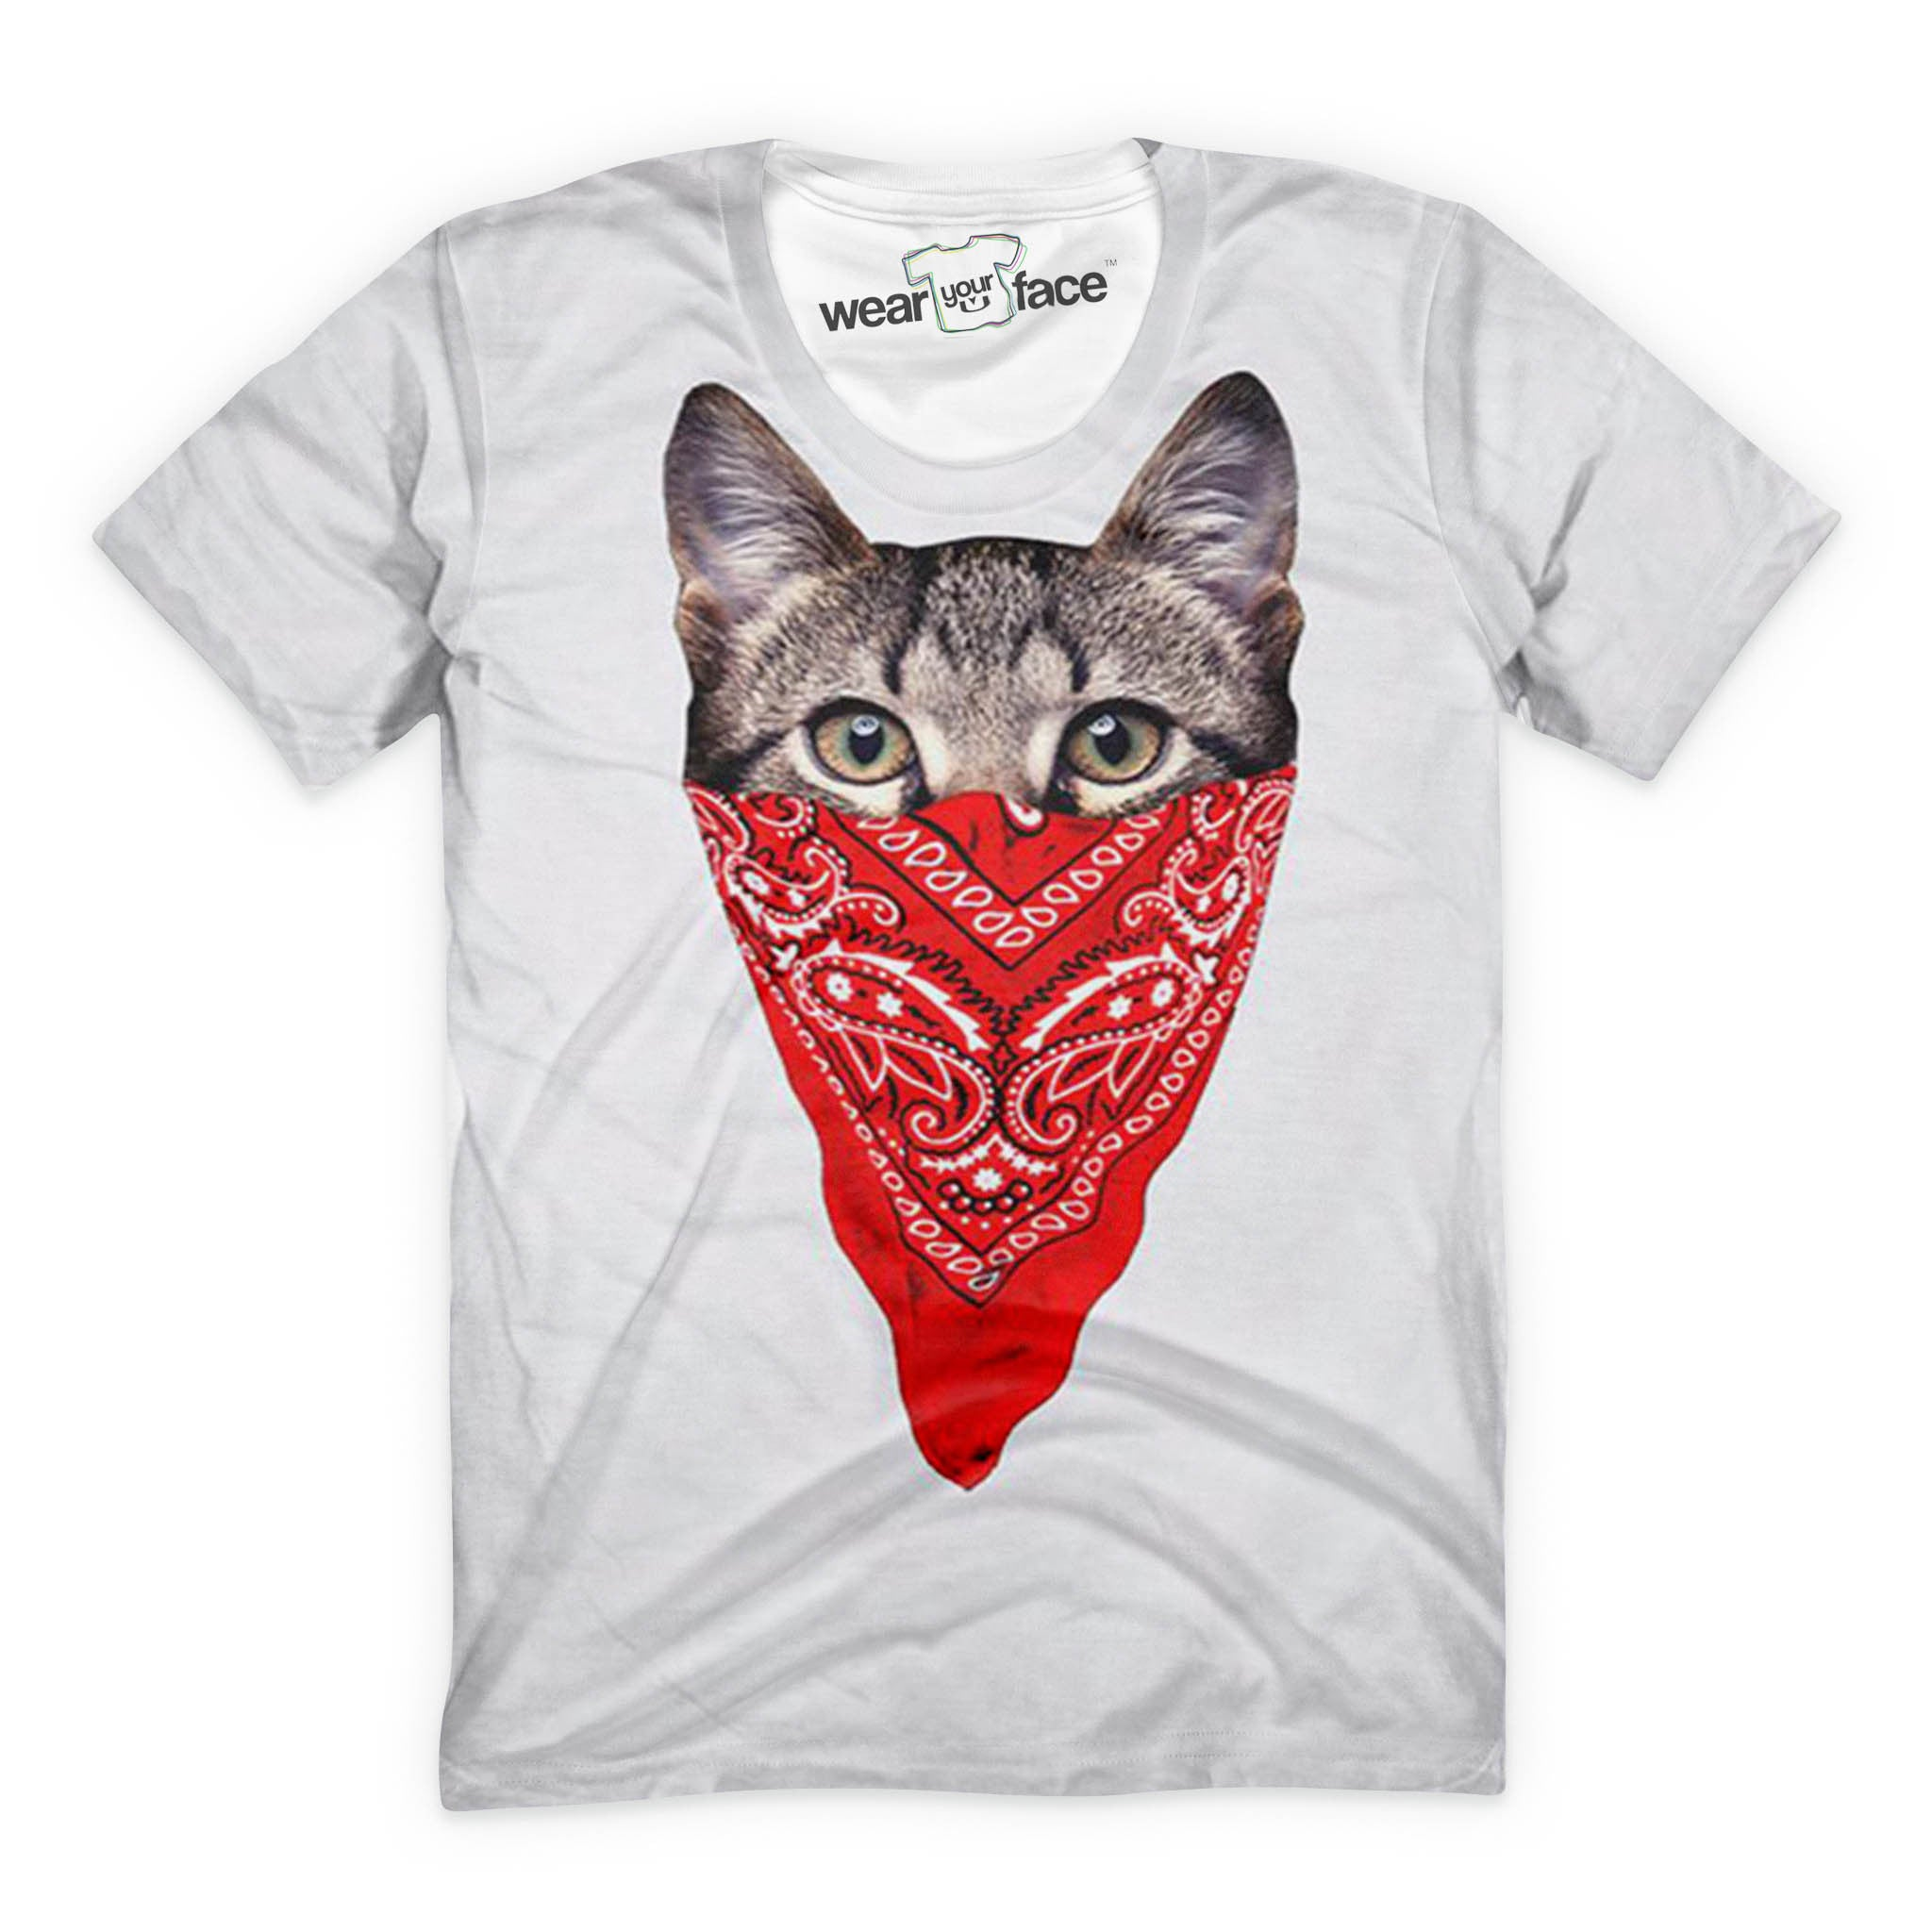 The Original Gangster Cat T-Shirt